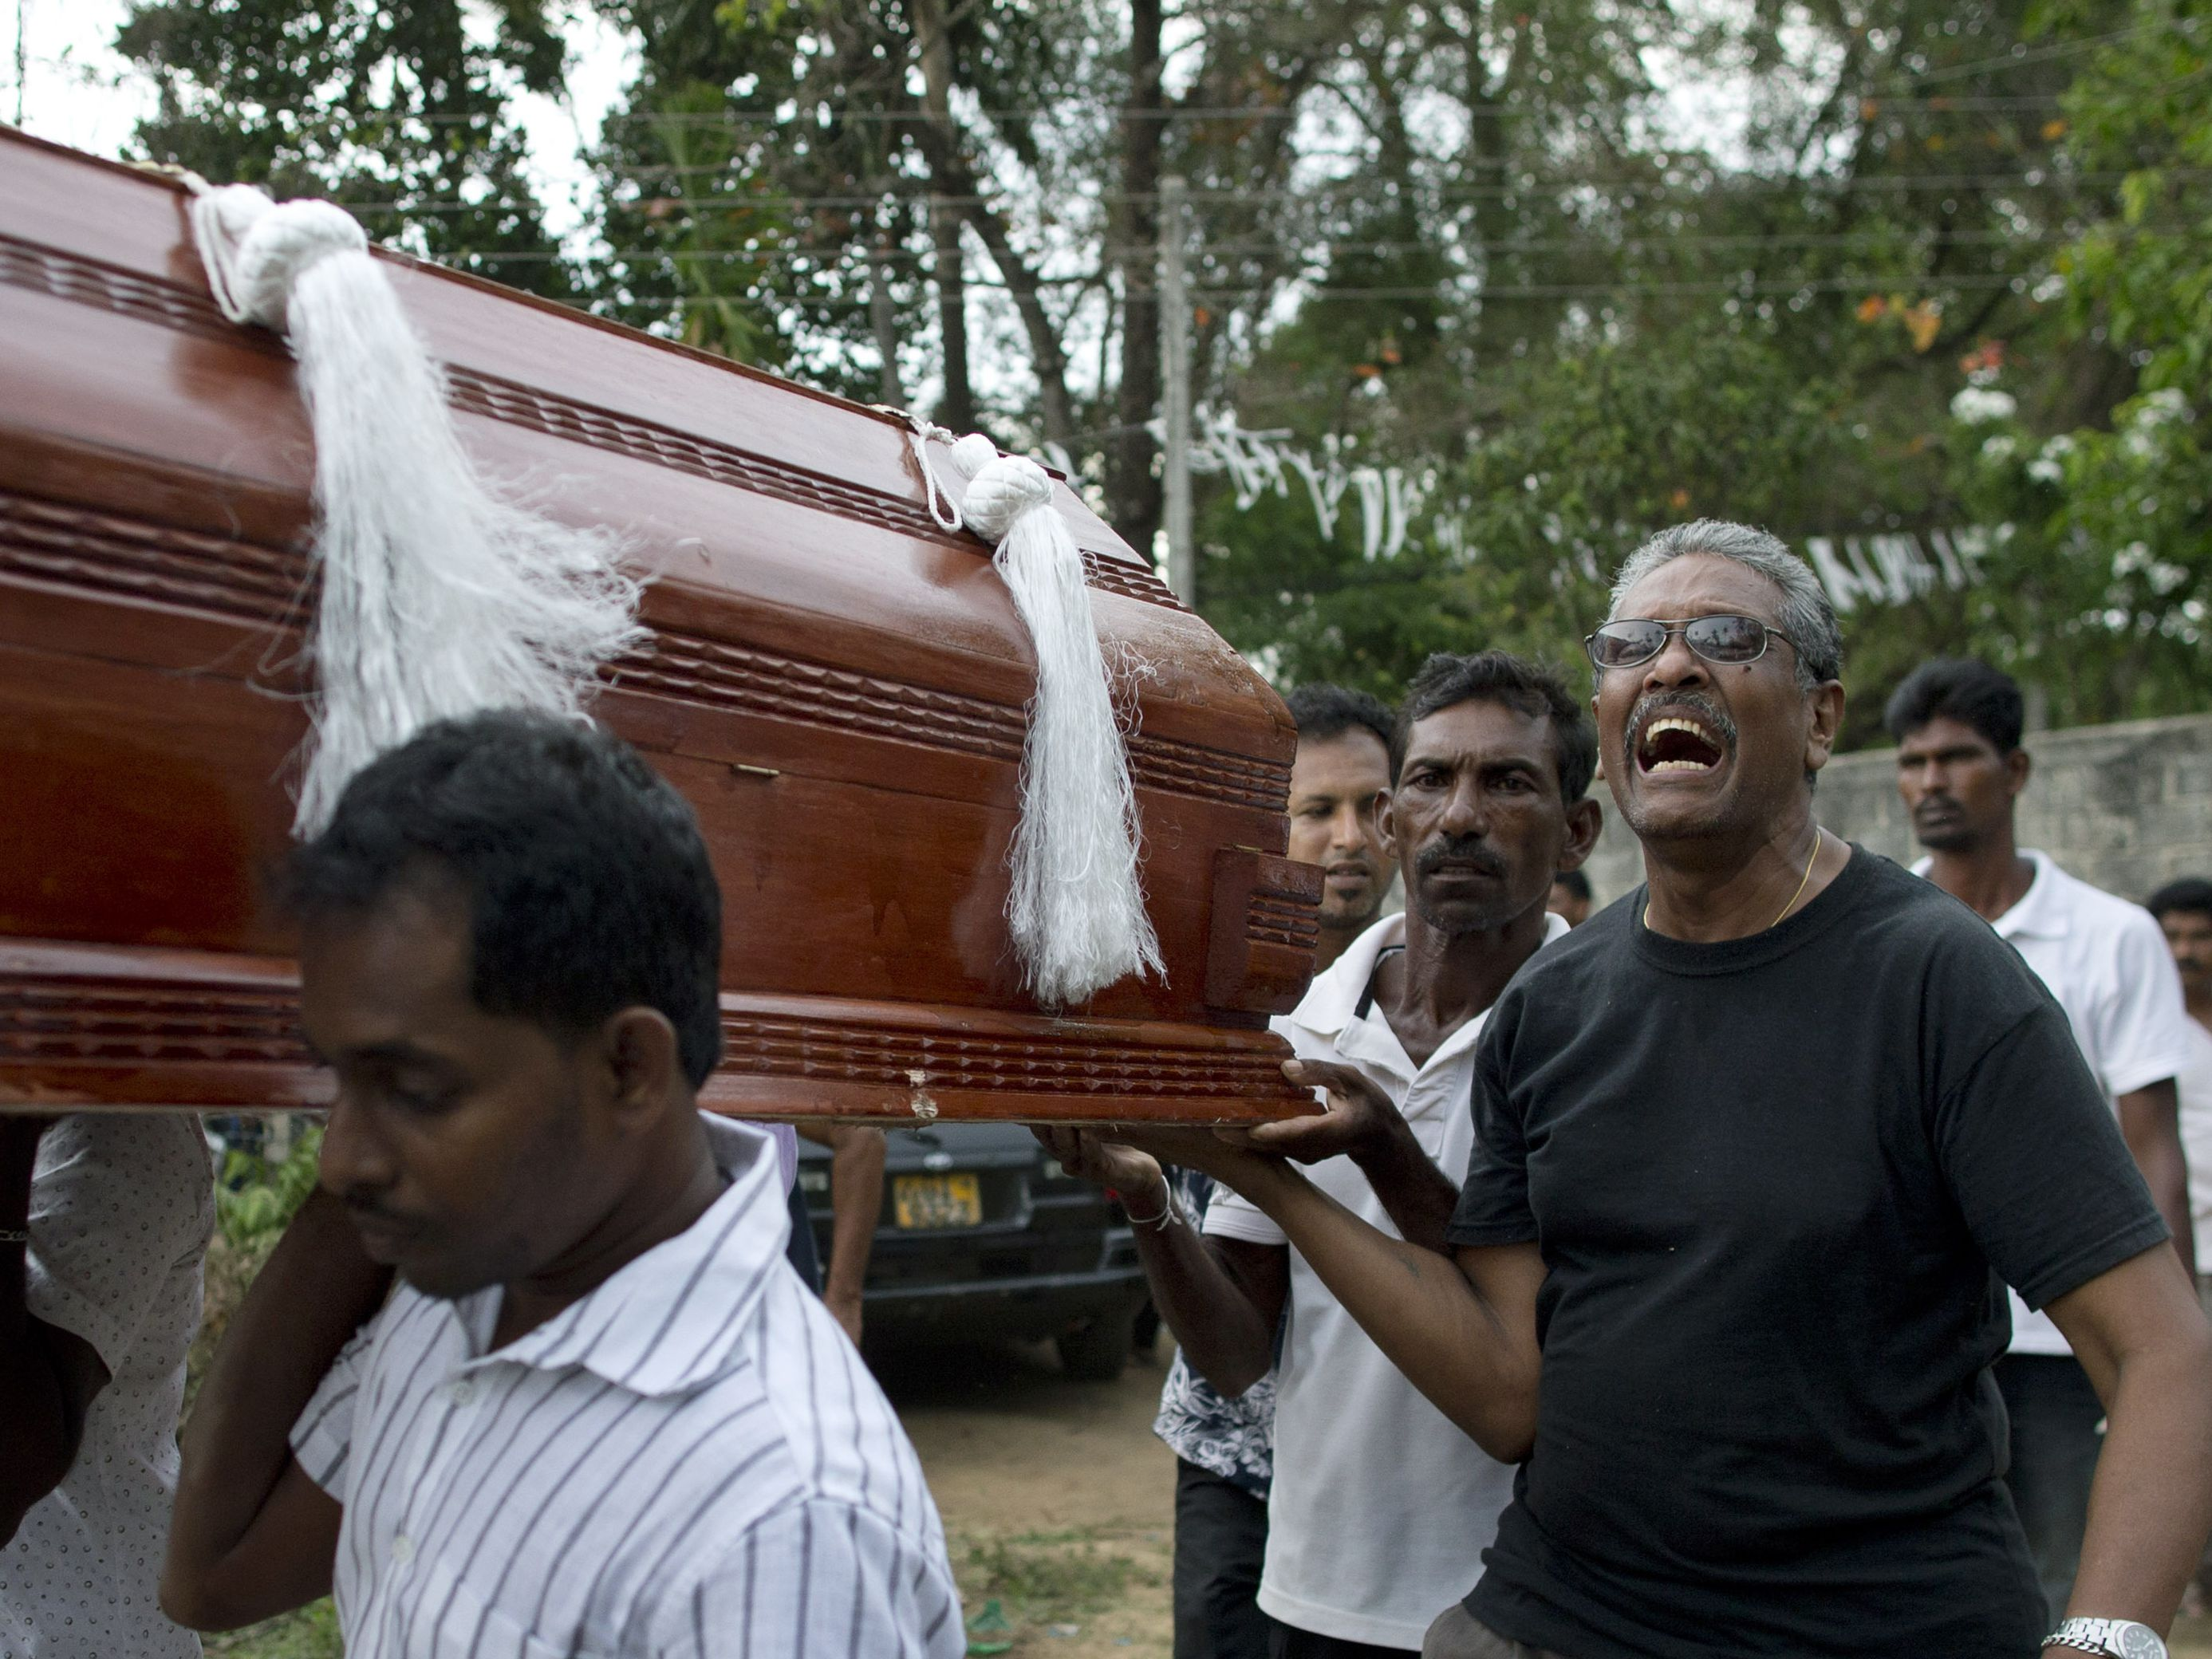 As Sri Lanka mourns, Islamic State claims Easter bombings